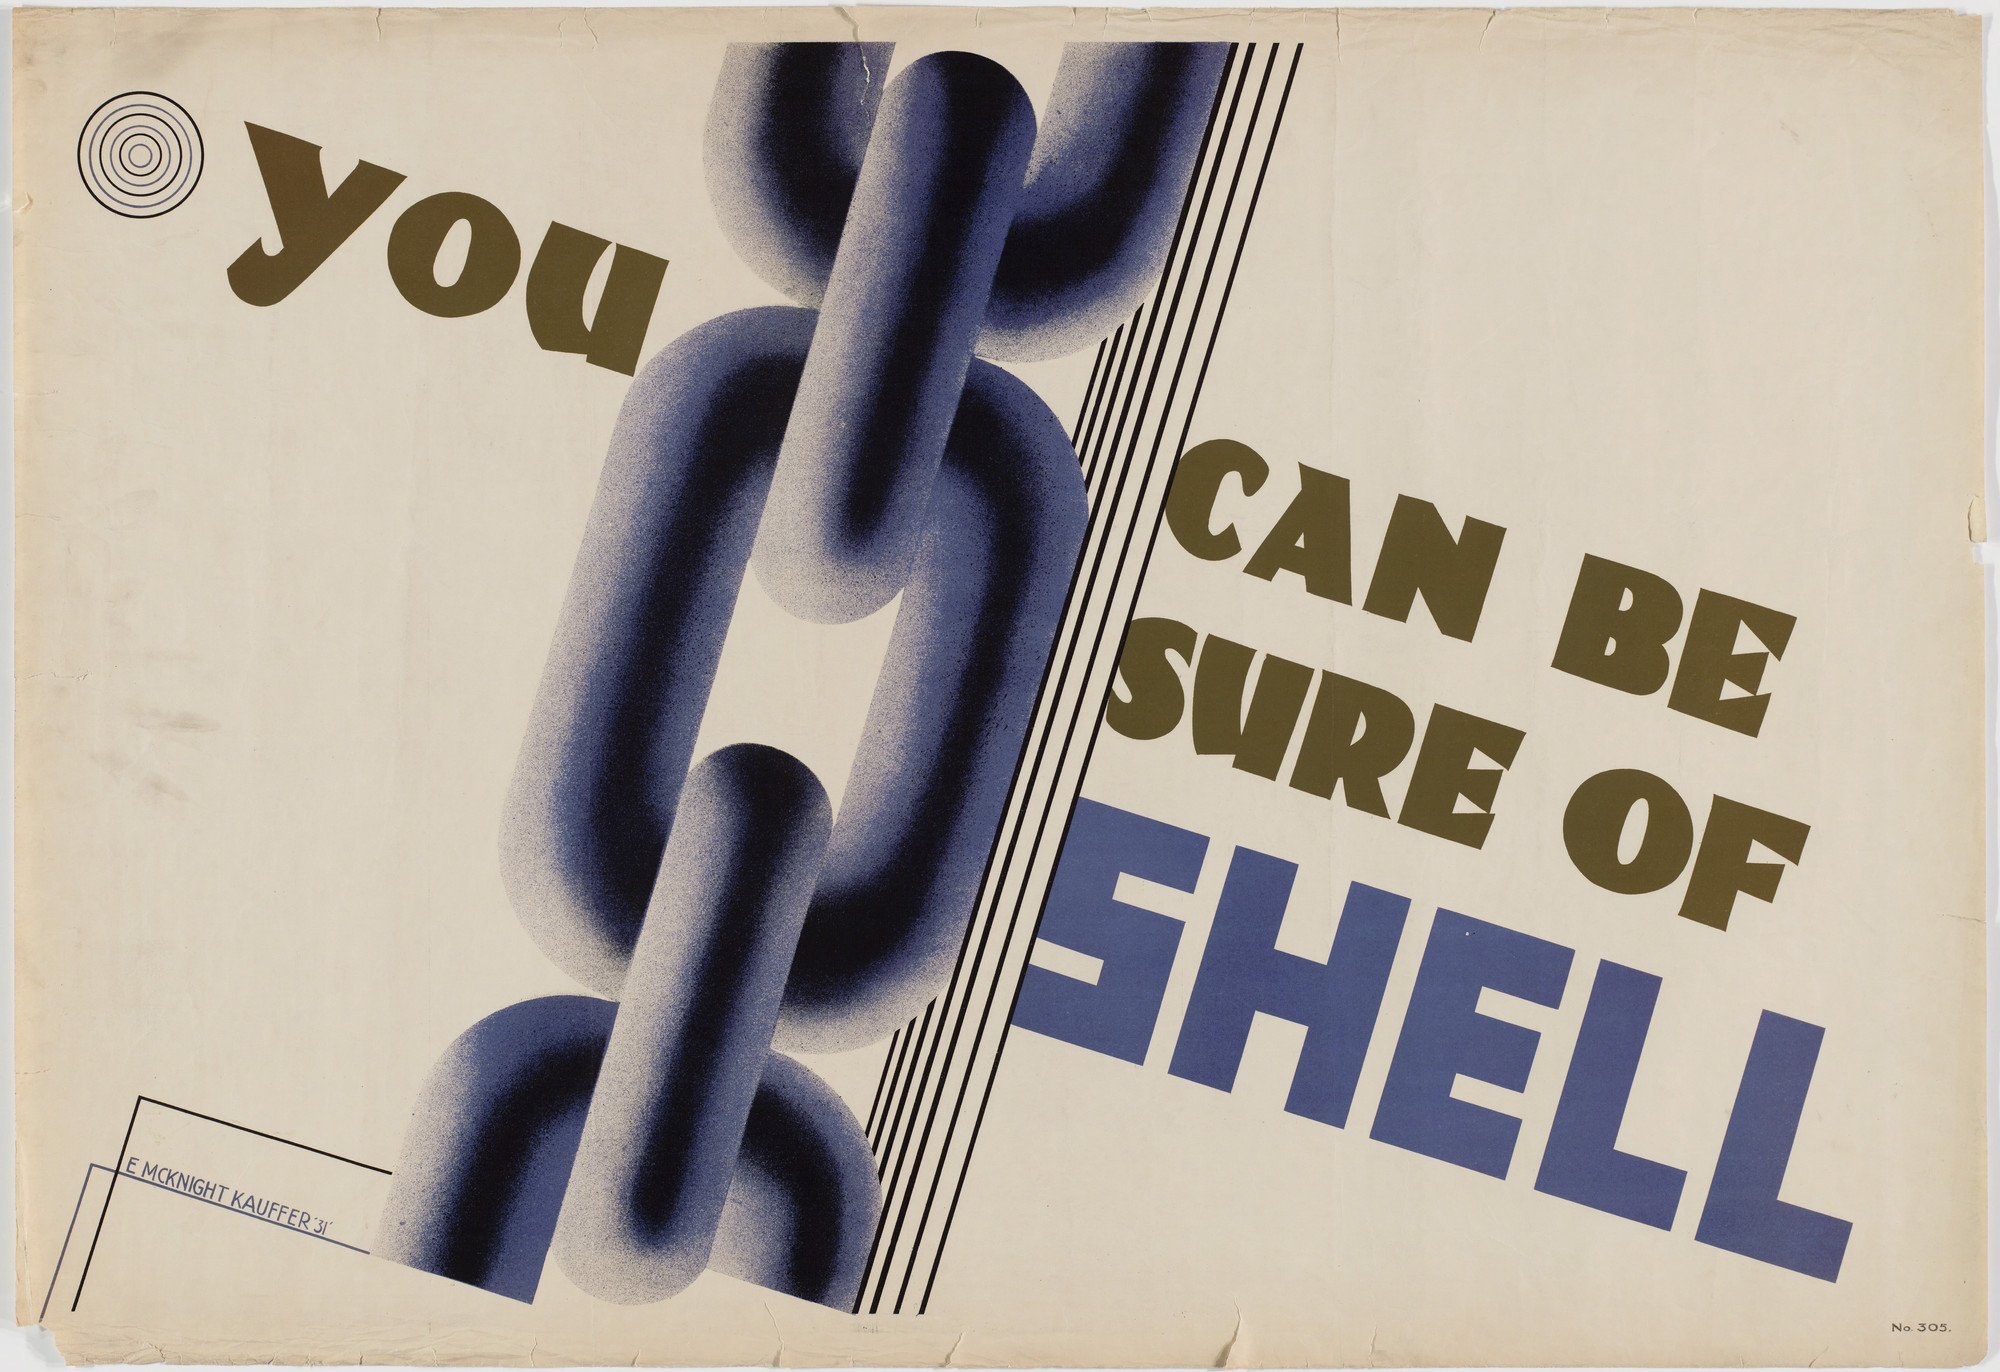 E. McKnight Kauffer. You Can Be Sure of Shell. 1931